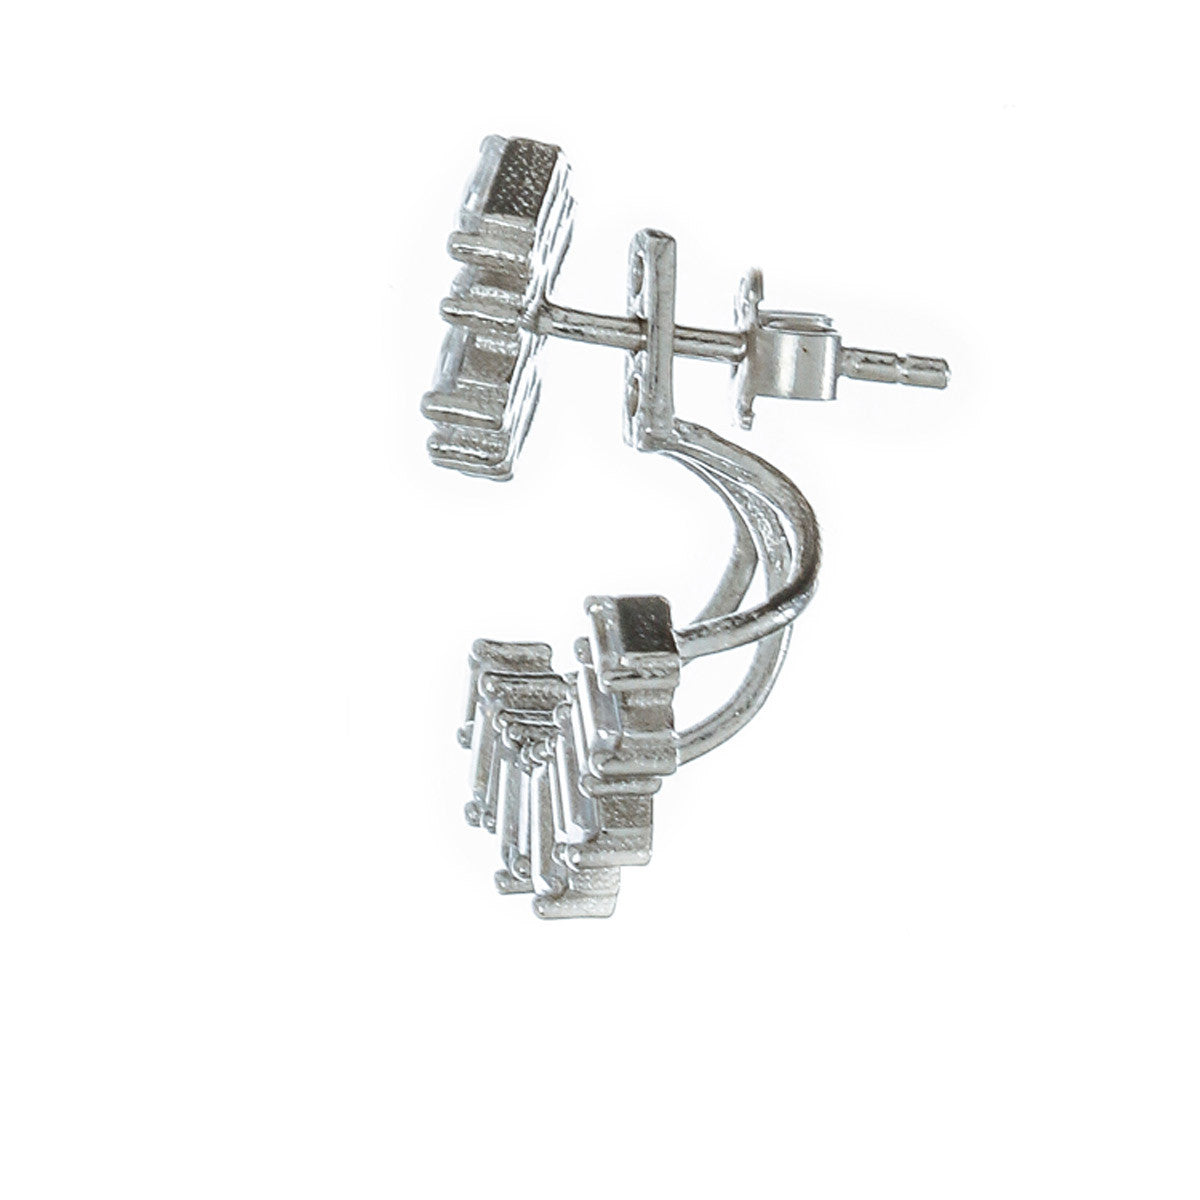 French Baguette Jacket Studs - The Firestone Collection - Fashion Jewelry & Accessories